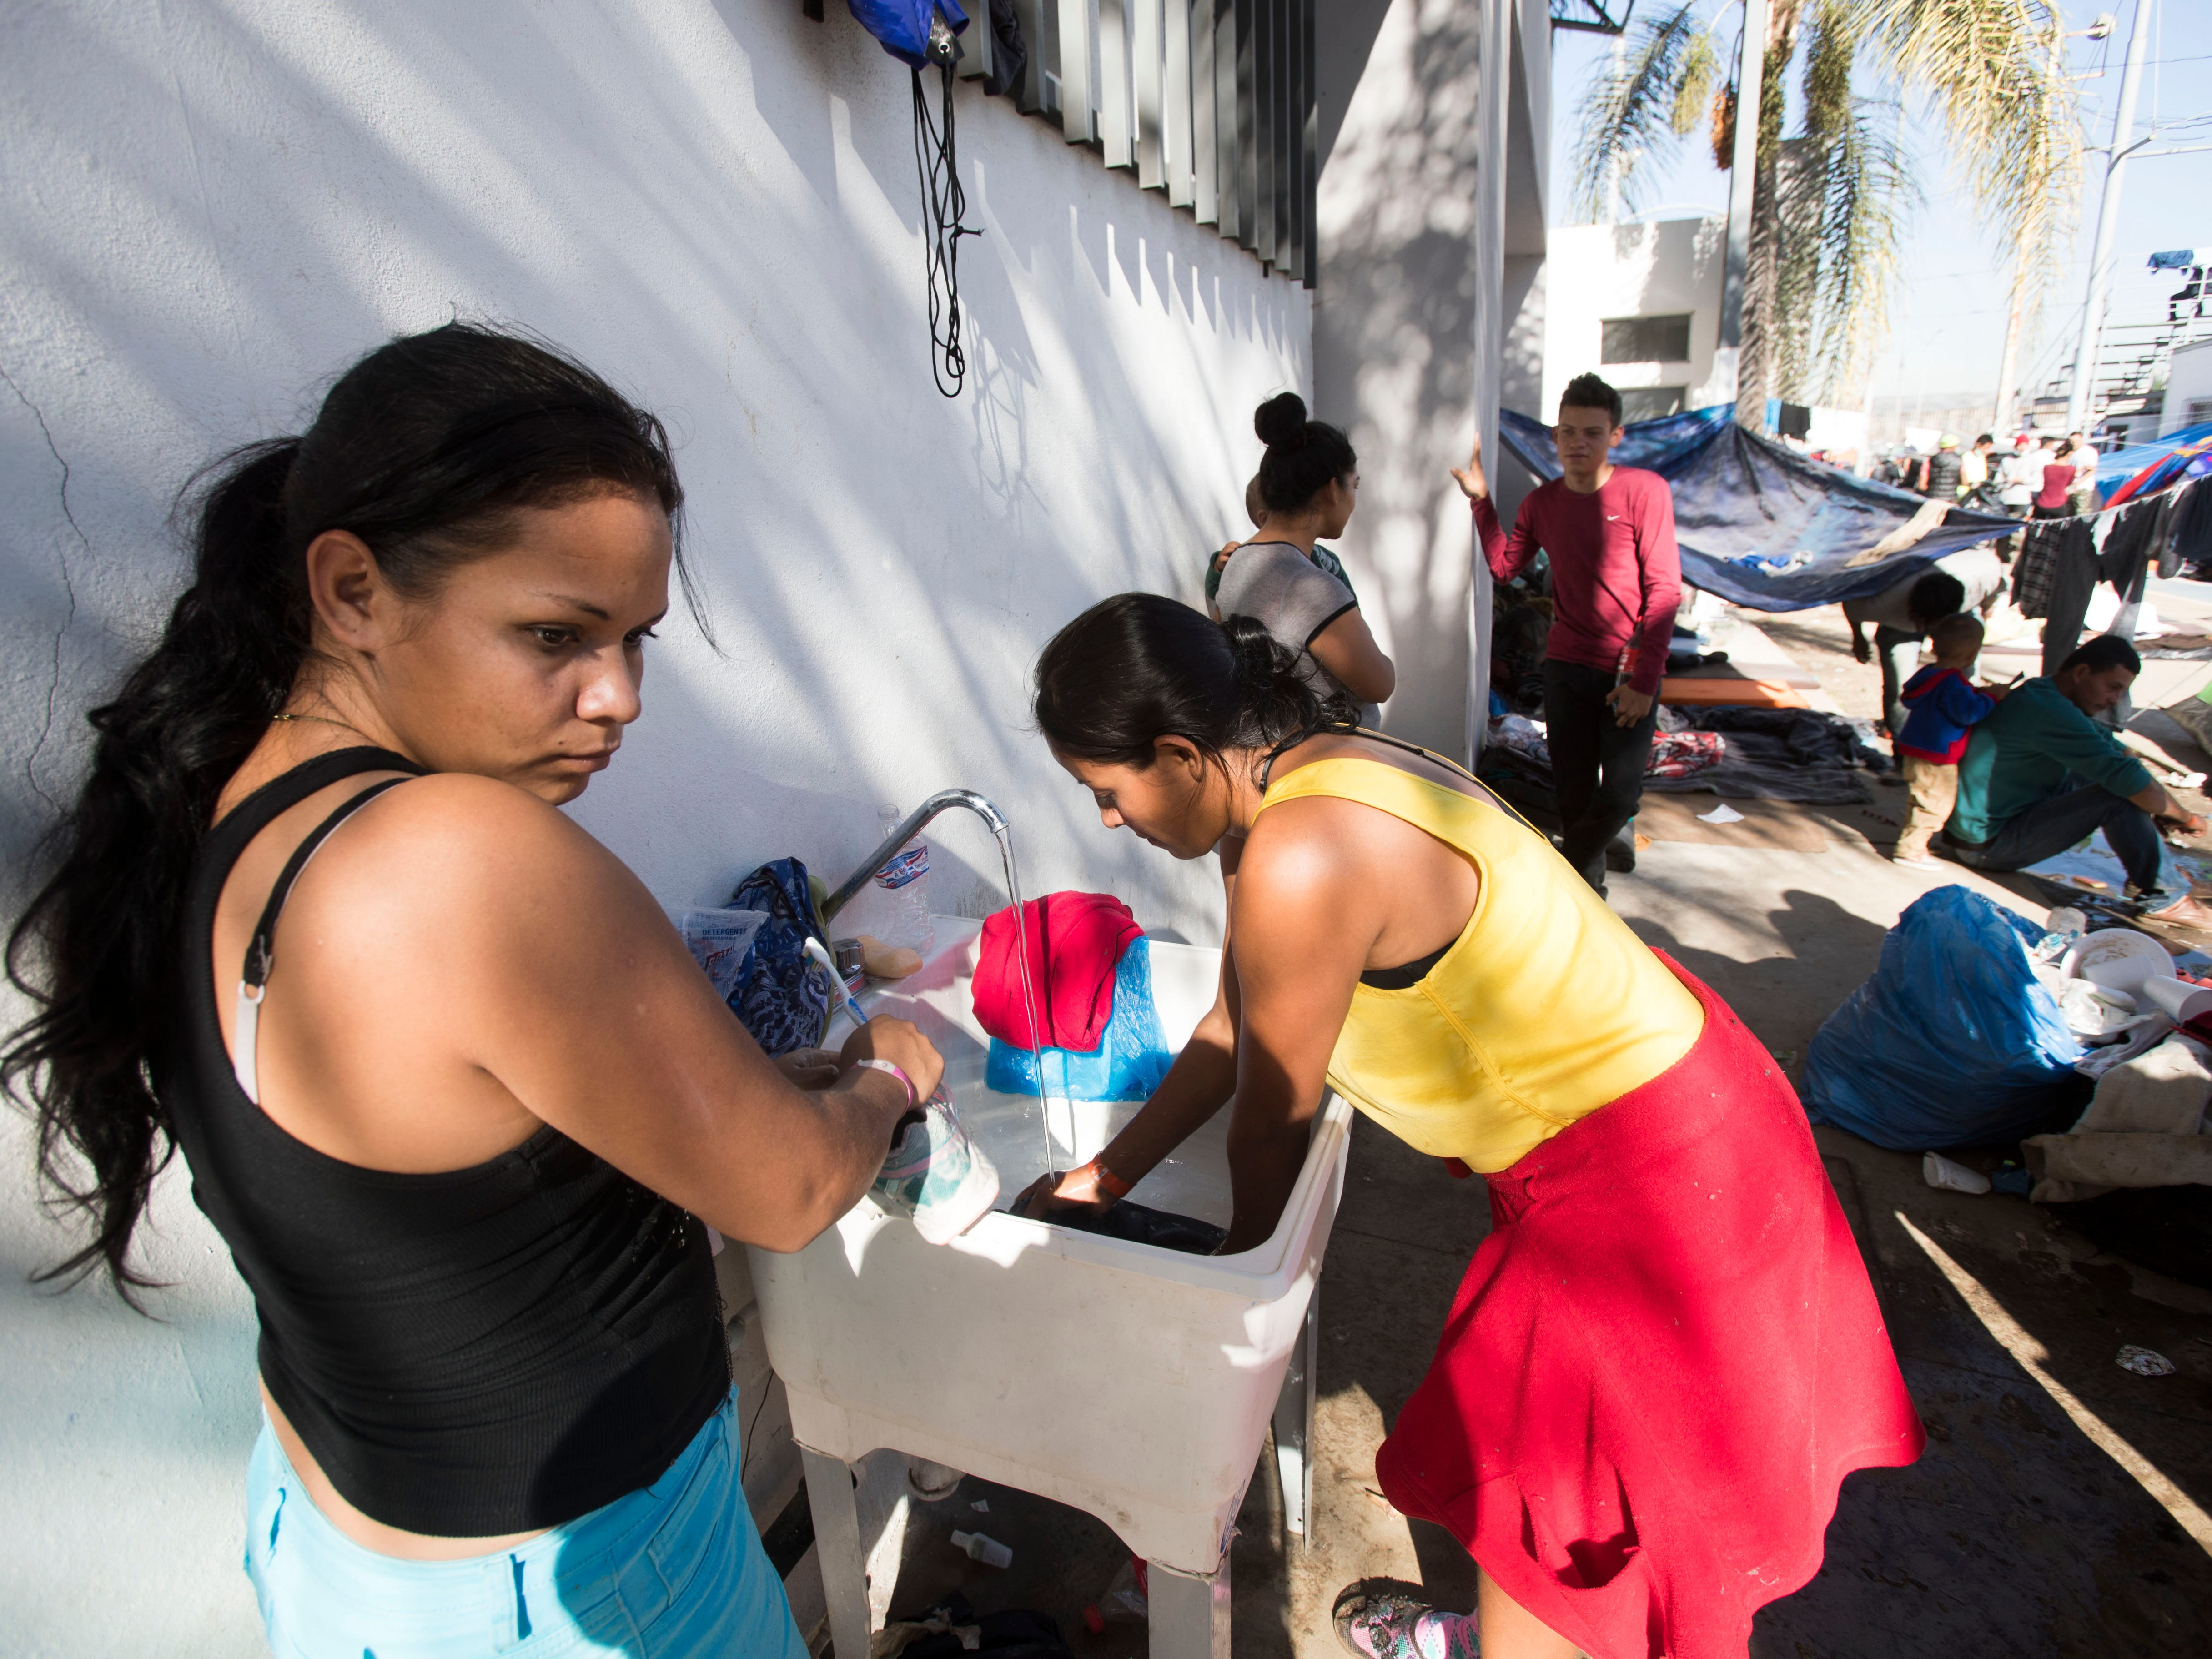 Women and men take turns to wash clothes in one of two sinks at the Benito Juarez sports complex shelter, Nov. 27, 2018, in Tijuana, Mexico.